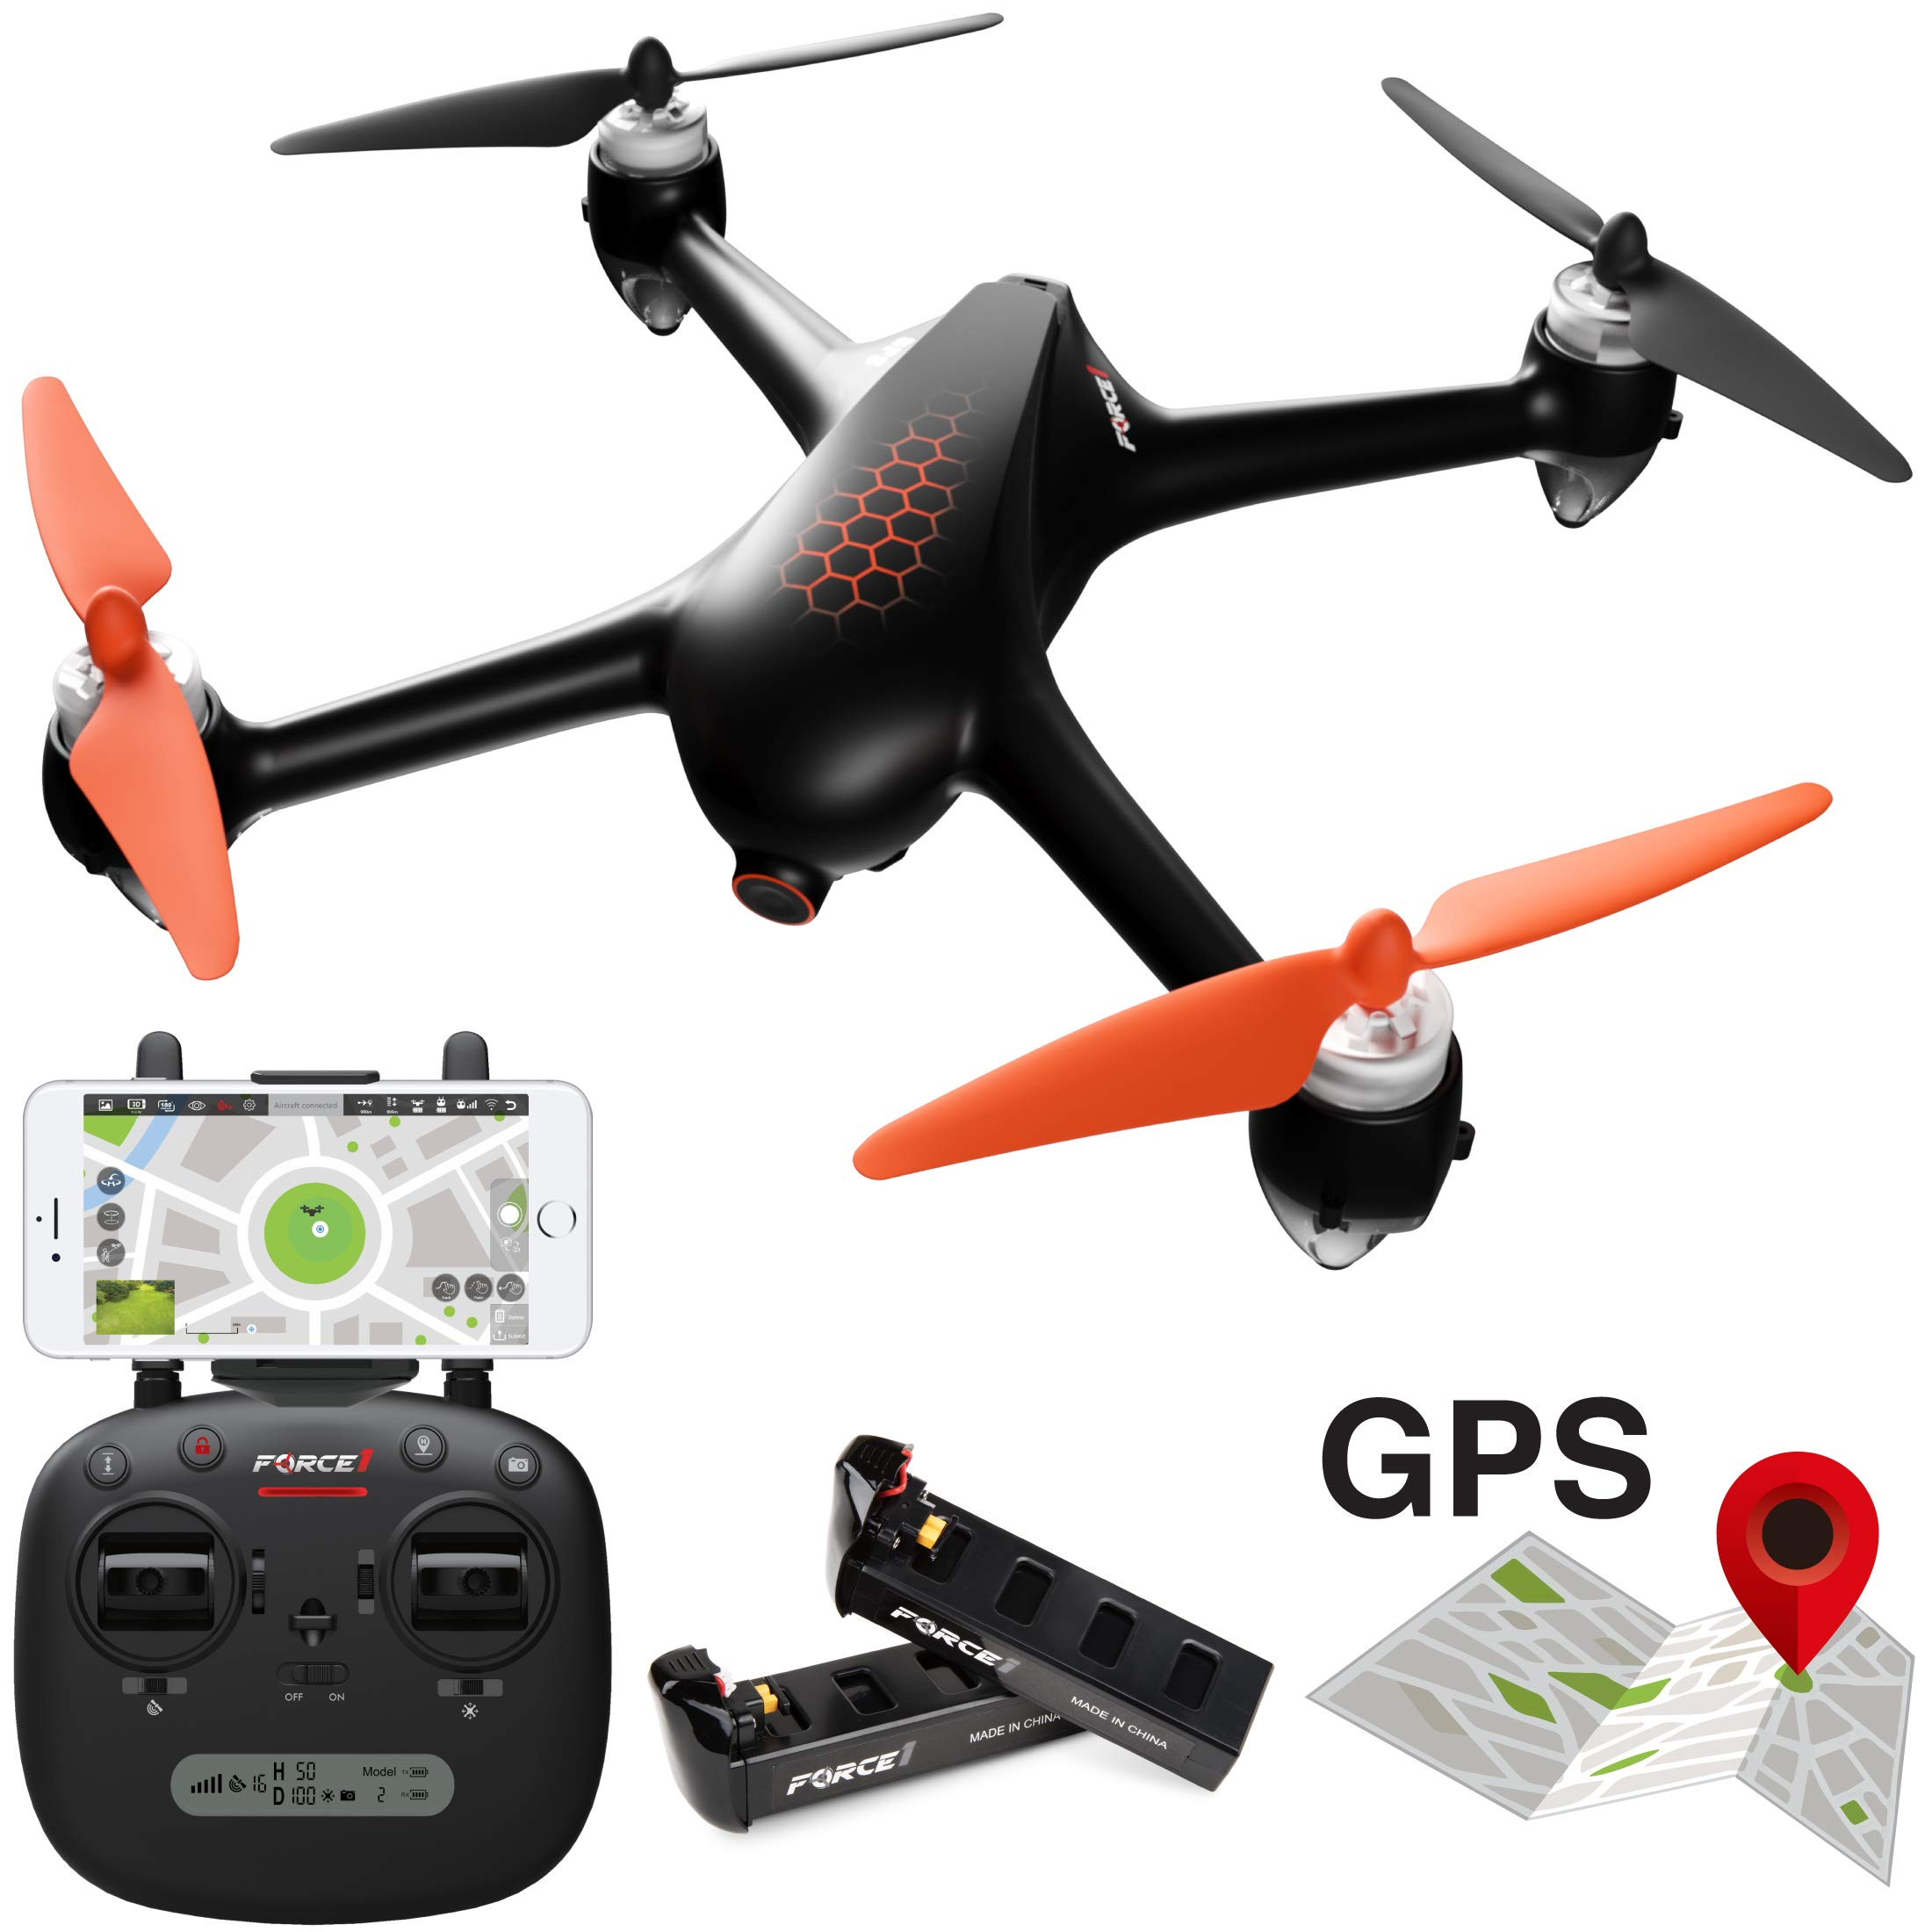 Follow Me Drones with Camera and GPS – MJX Bugs 2 Hex 1080P Live Video Drone w/Return Home Function, RC Brushless Motor Drones for Adults or Teens